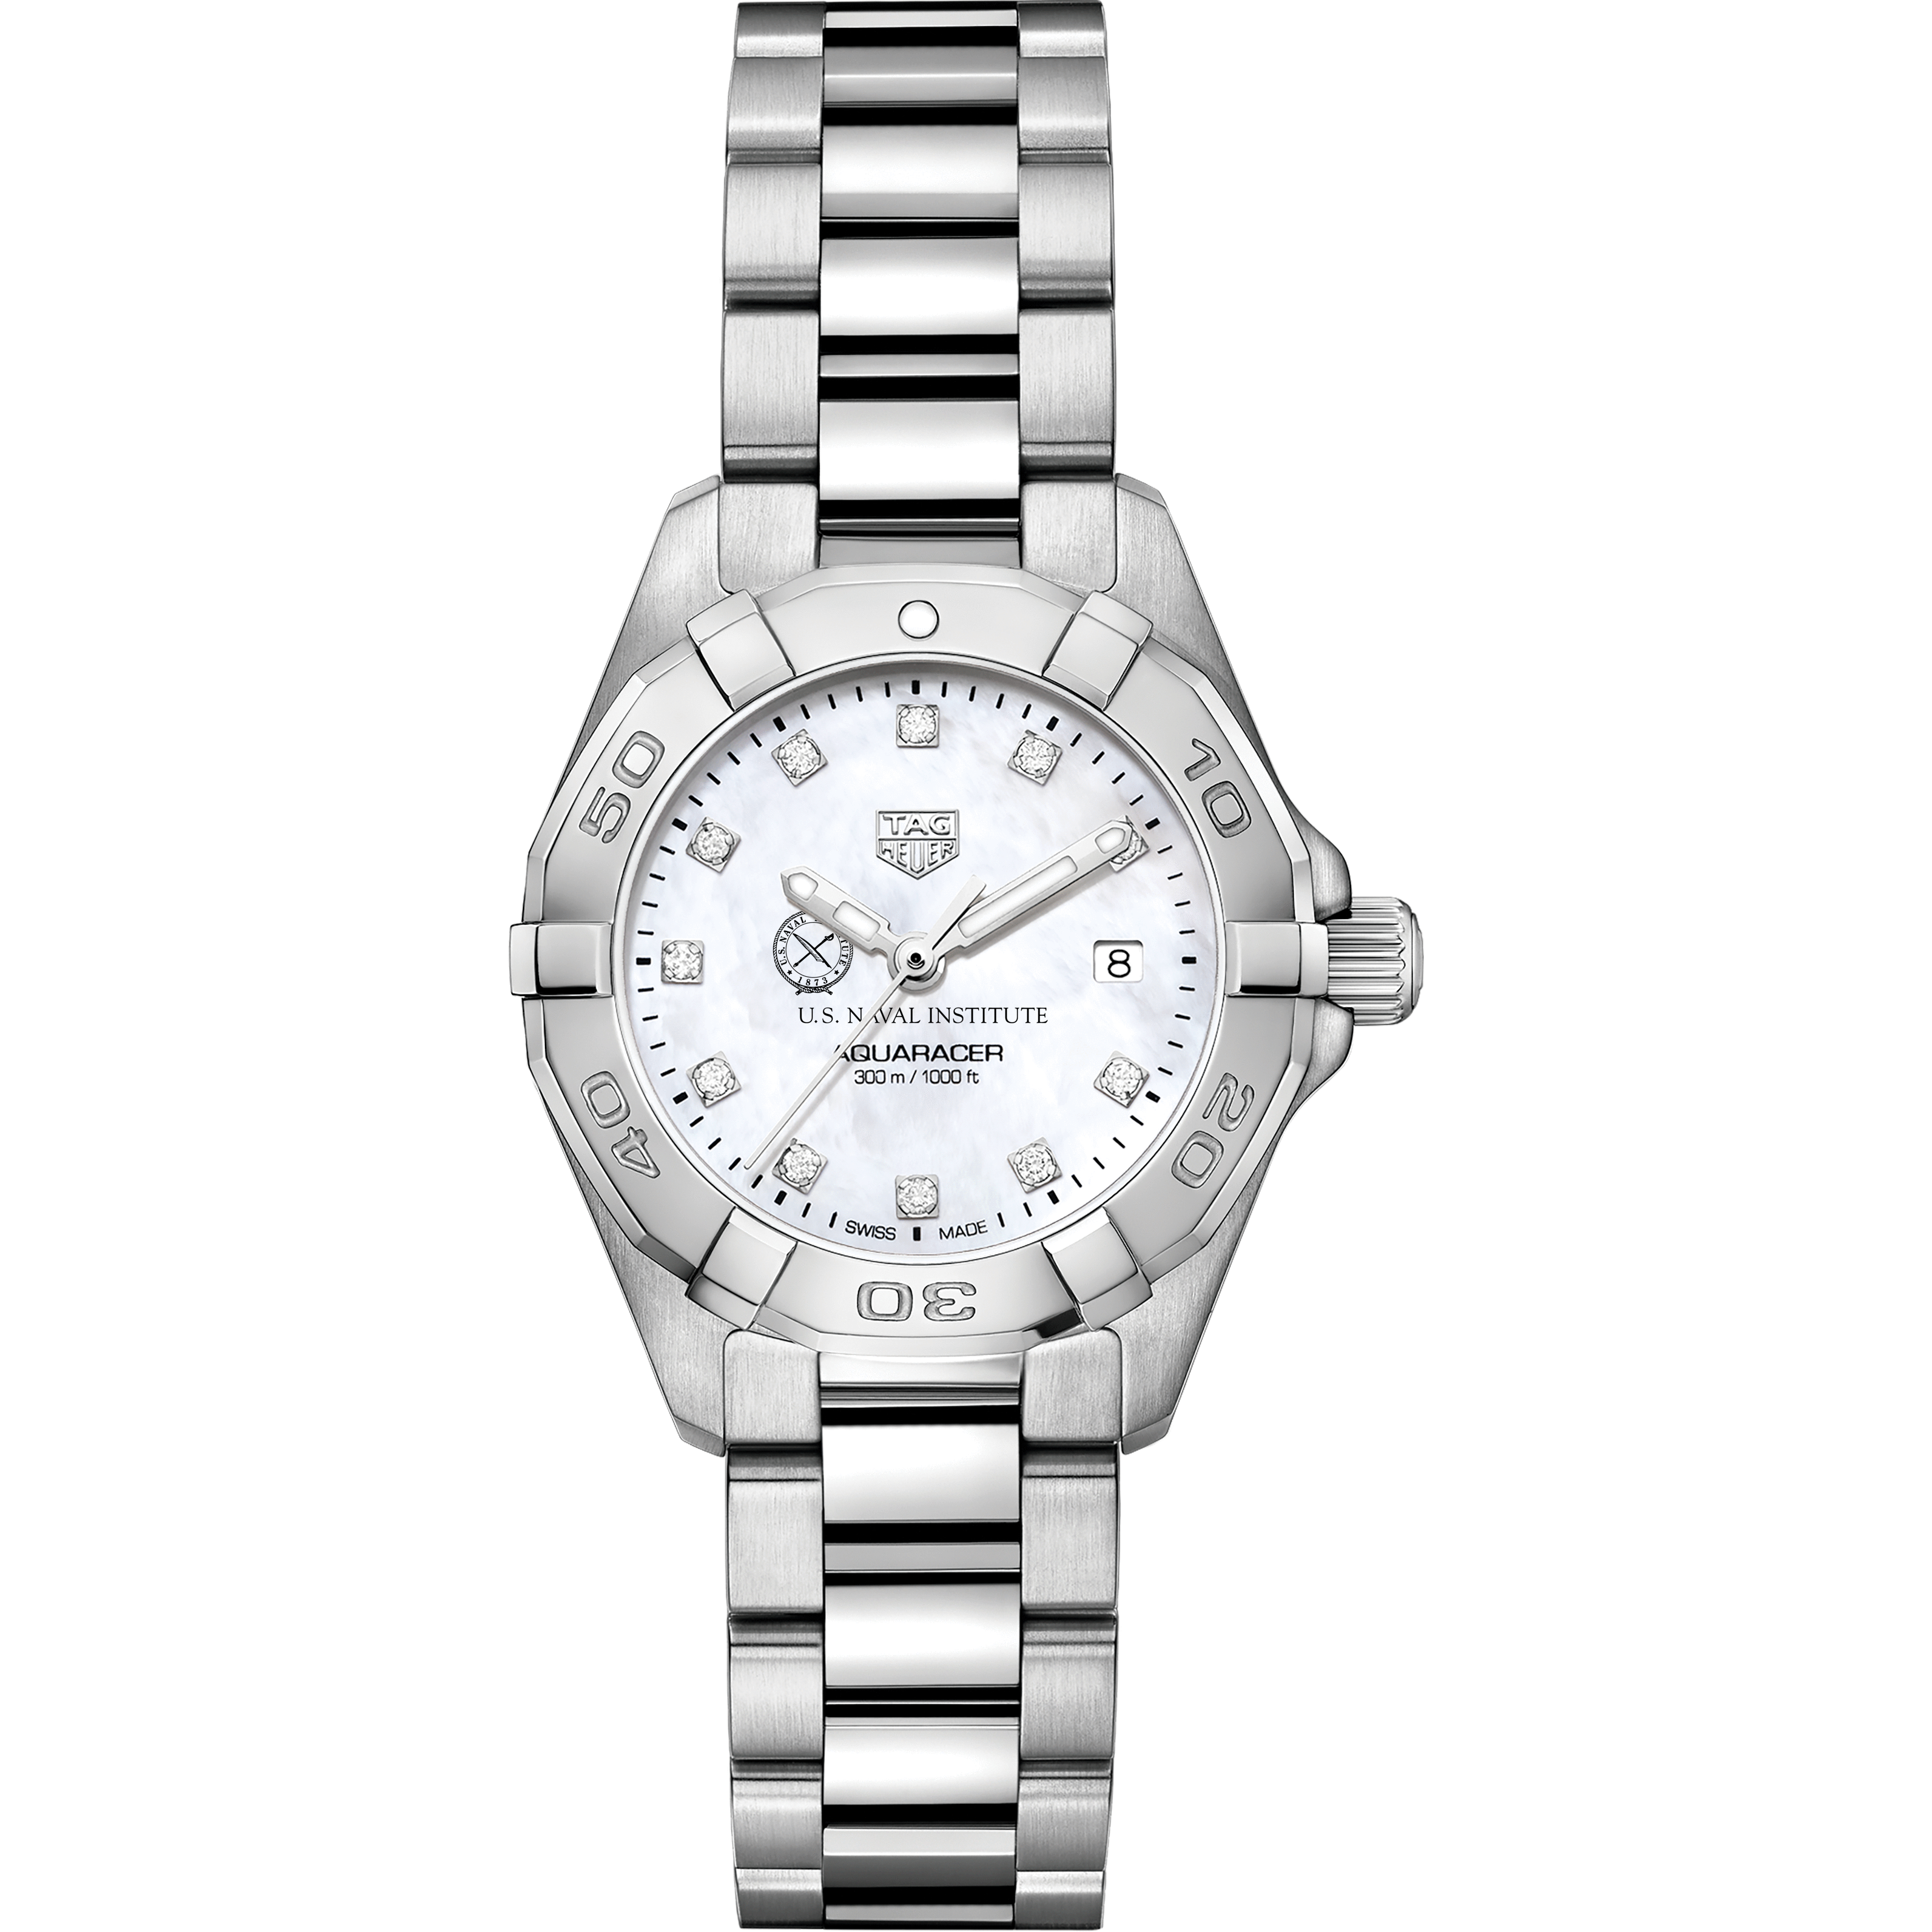 US Naval Institute Women's TAG Heuer Steel Aquaracer with MOP Diamond Dial - Image 2